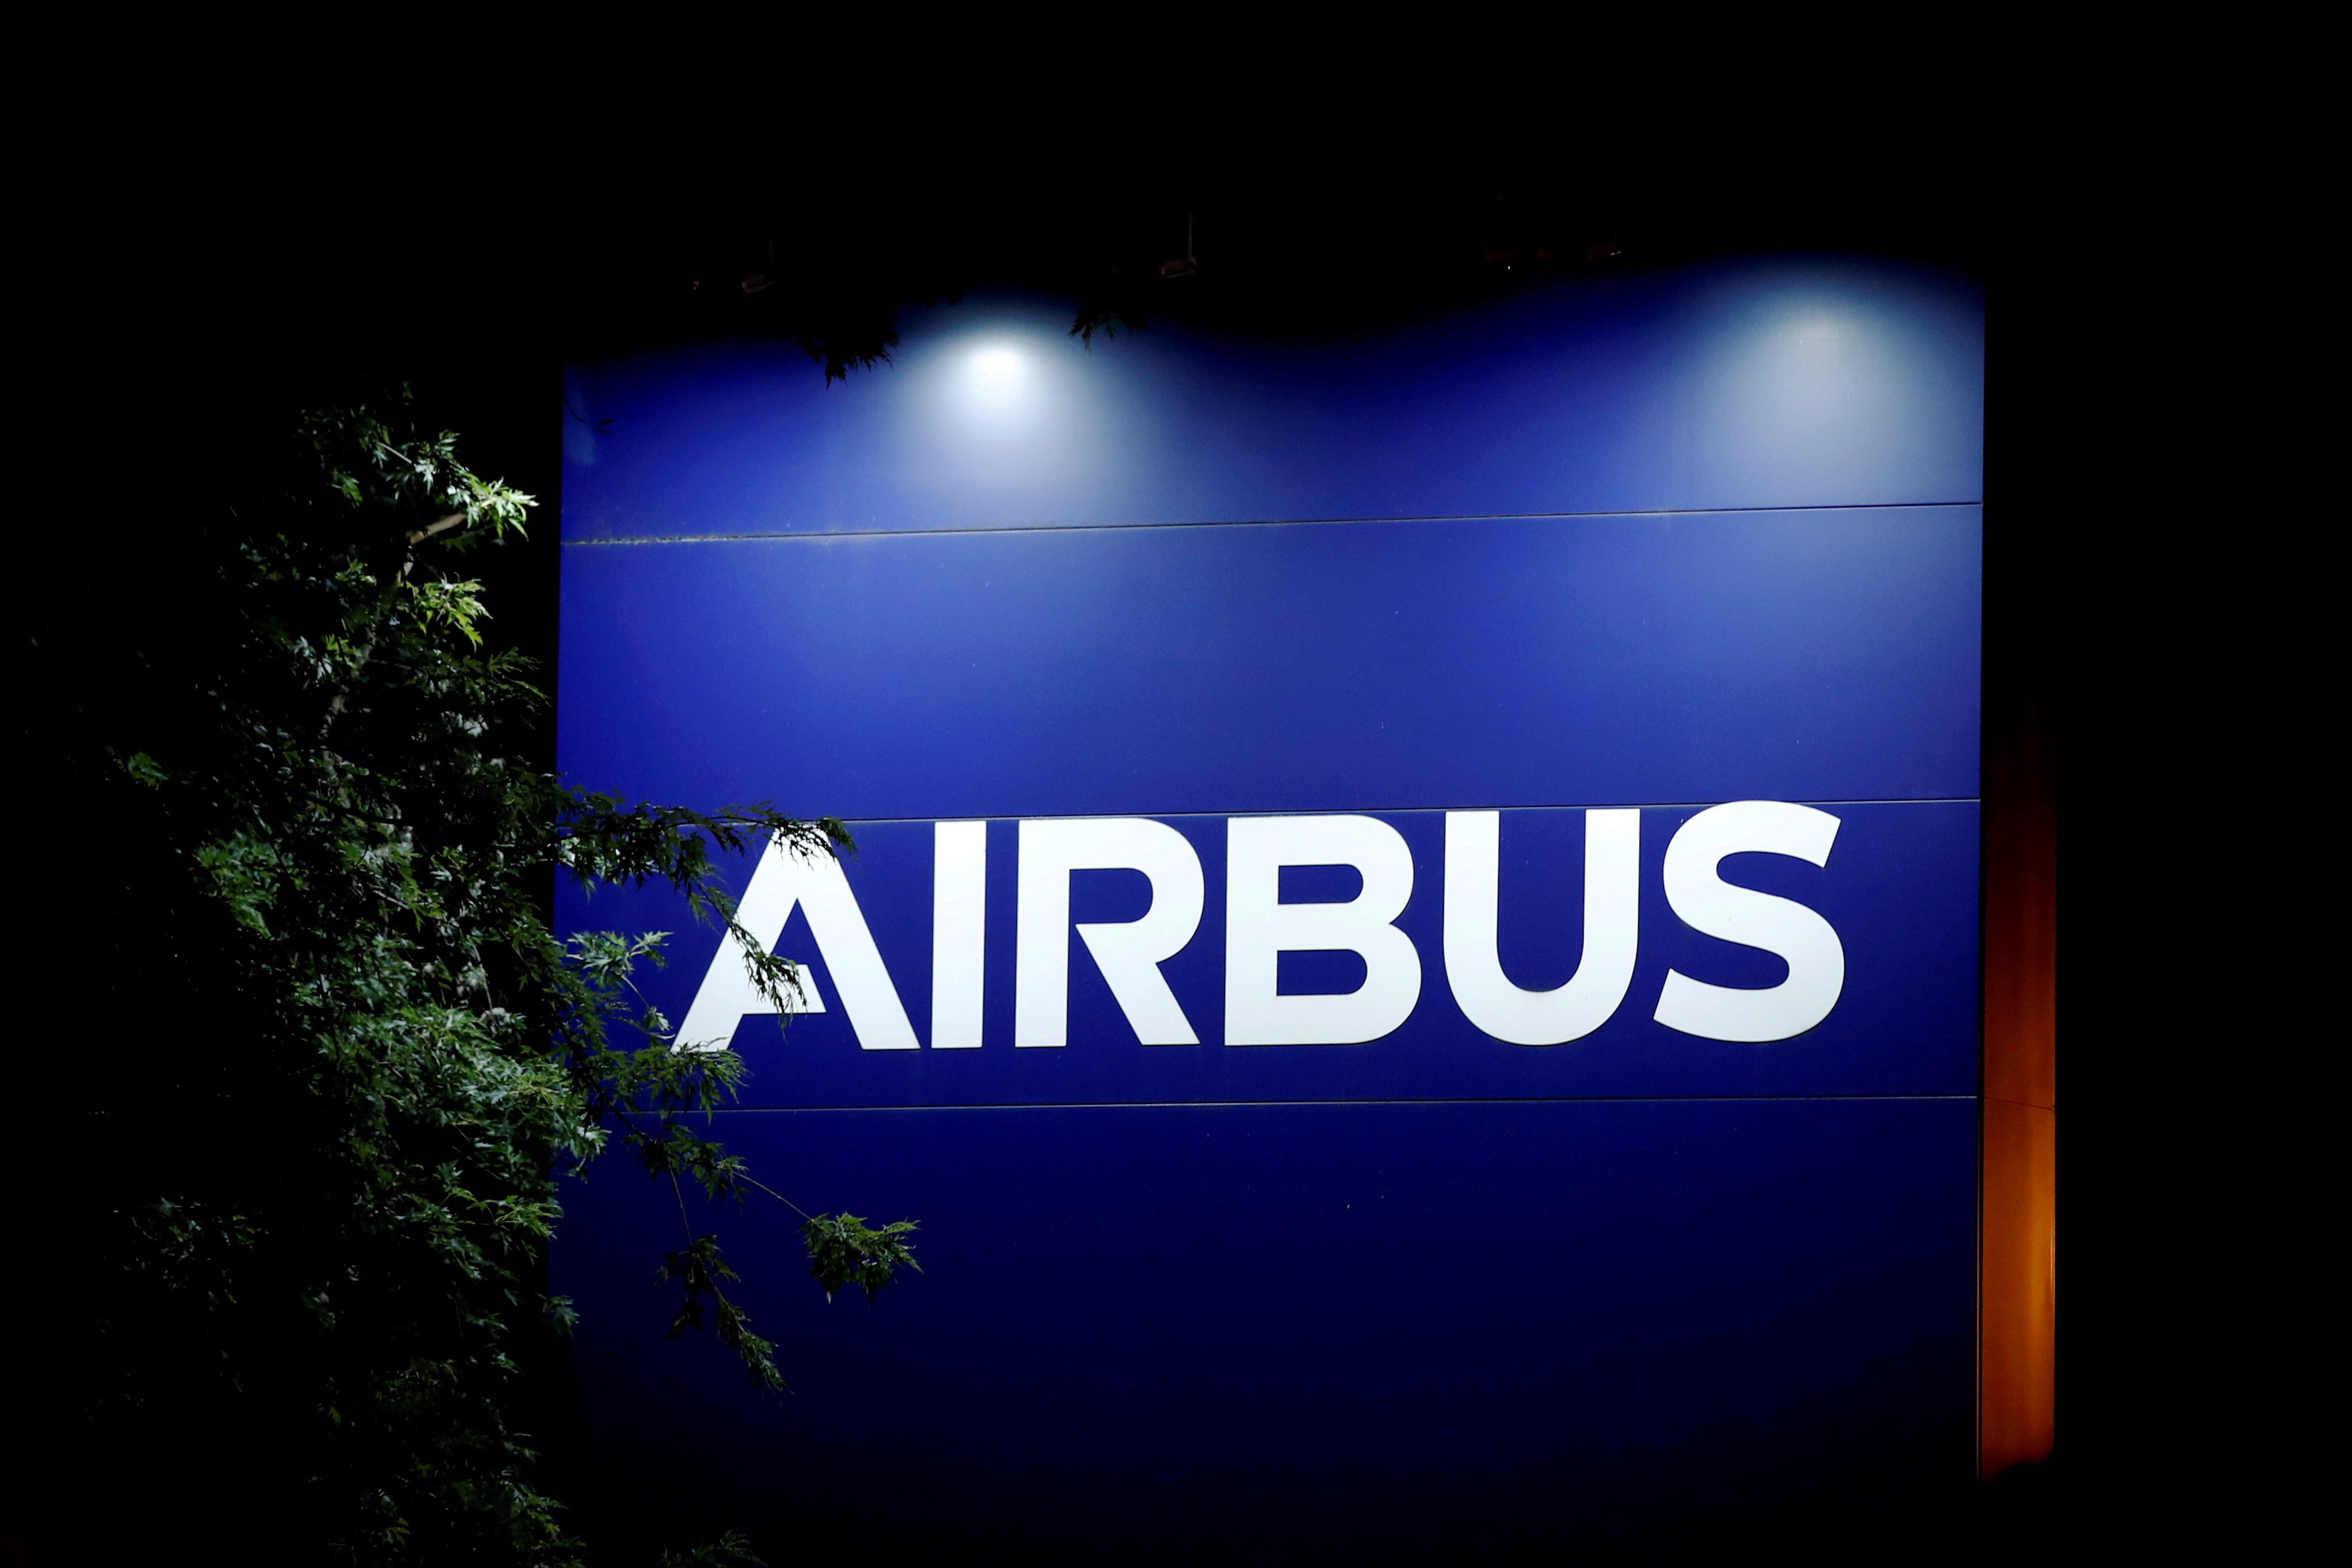 A logo of Airbus is seen at the entrance of its factory in Blagnac near Toulouse, France, July 2, 2020. REUTERS/Benoit Tessier